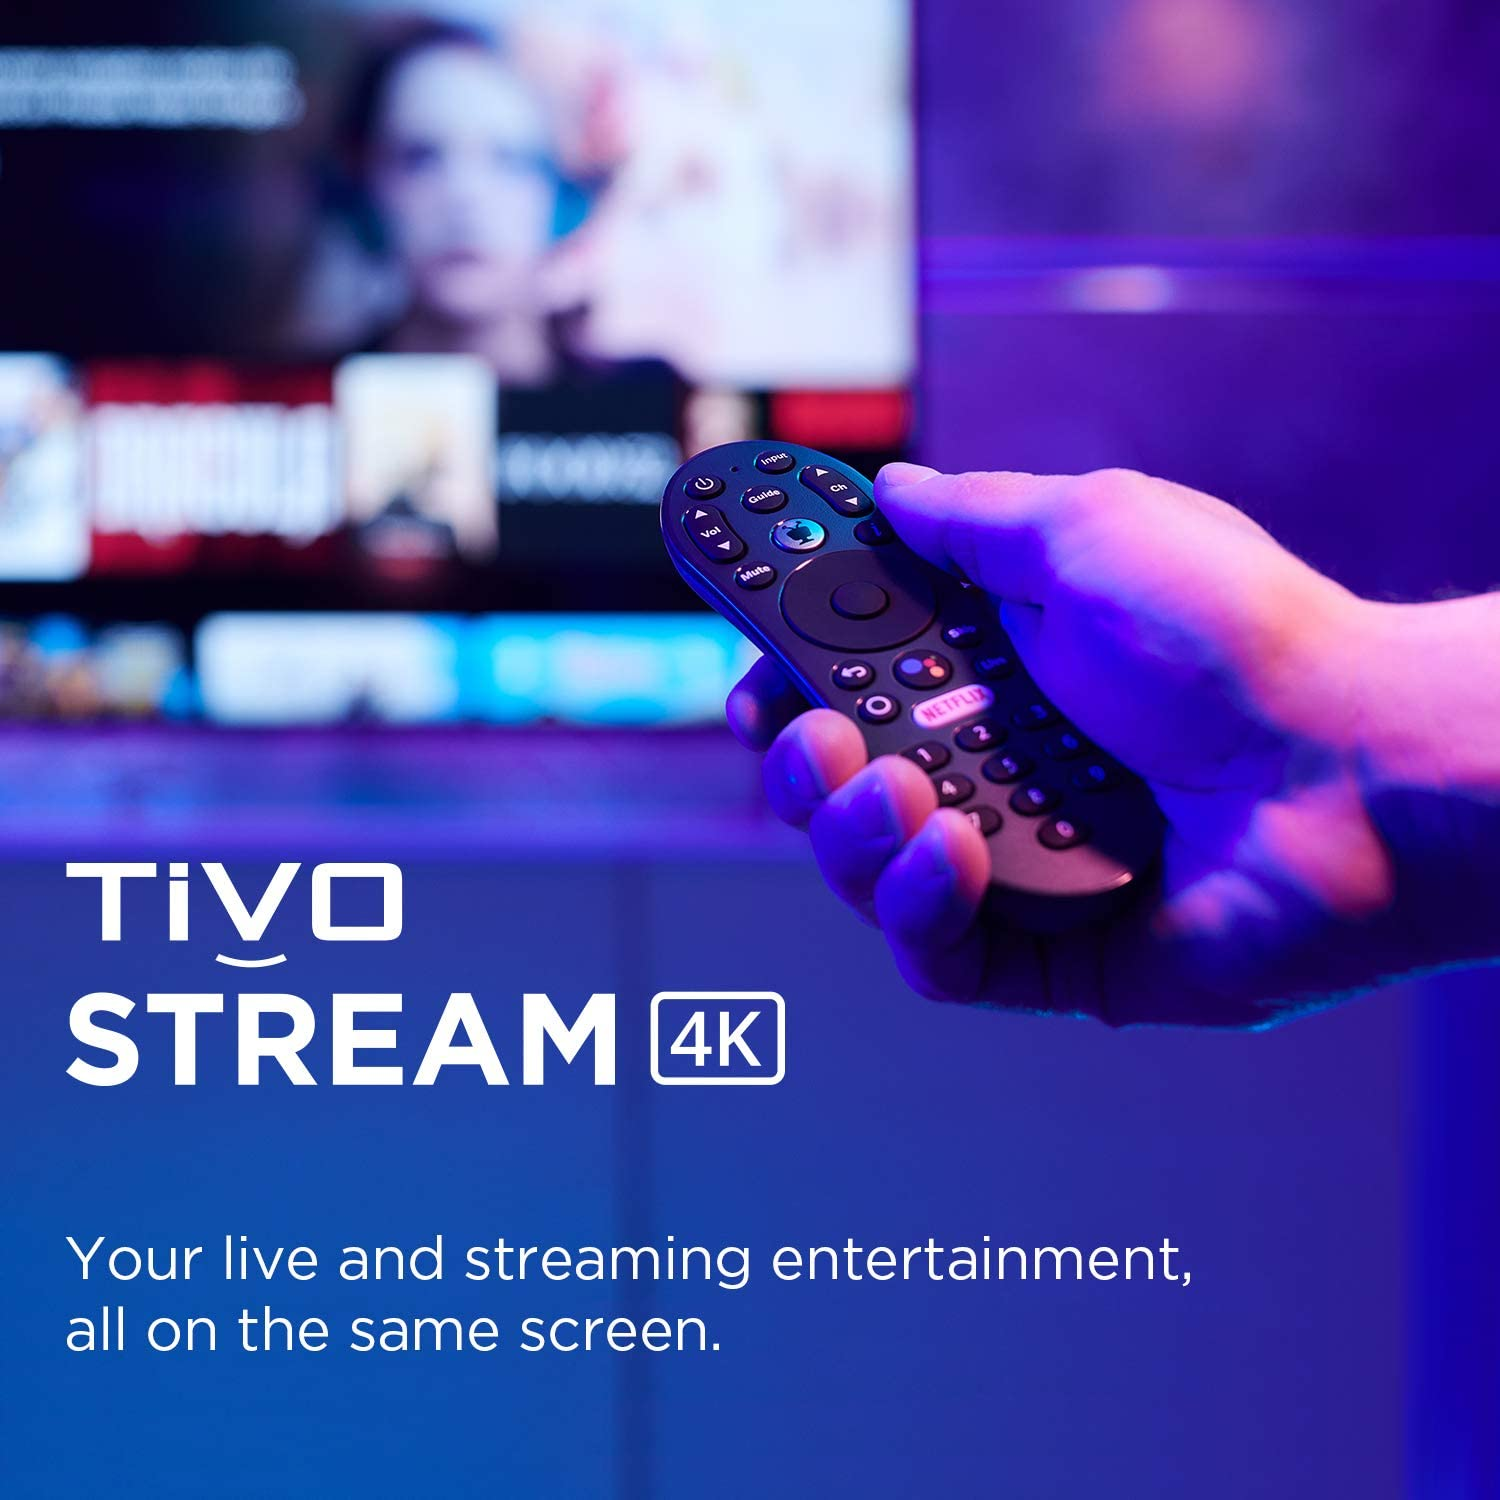 TiVo Stream 4K – Every Streaming App and Live TV on One Screen – 4K UHD, Dolby Vision HDR and Dolby Atmos Sound – Powered by Android TV – Plug-In Smart TV